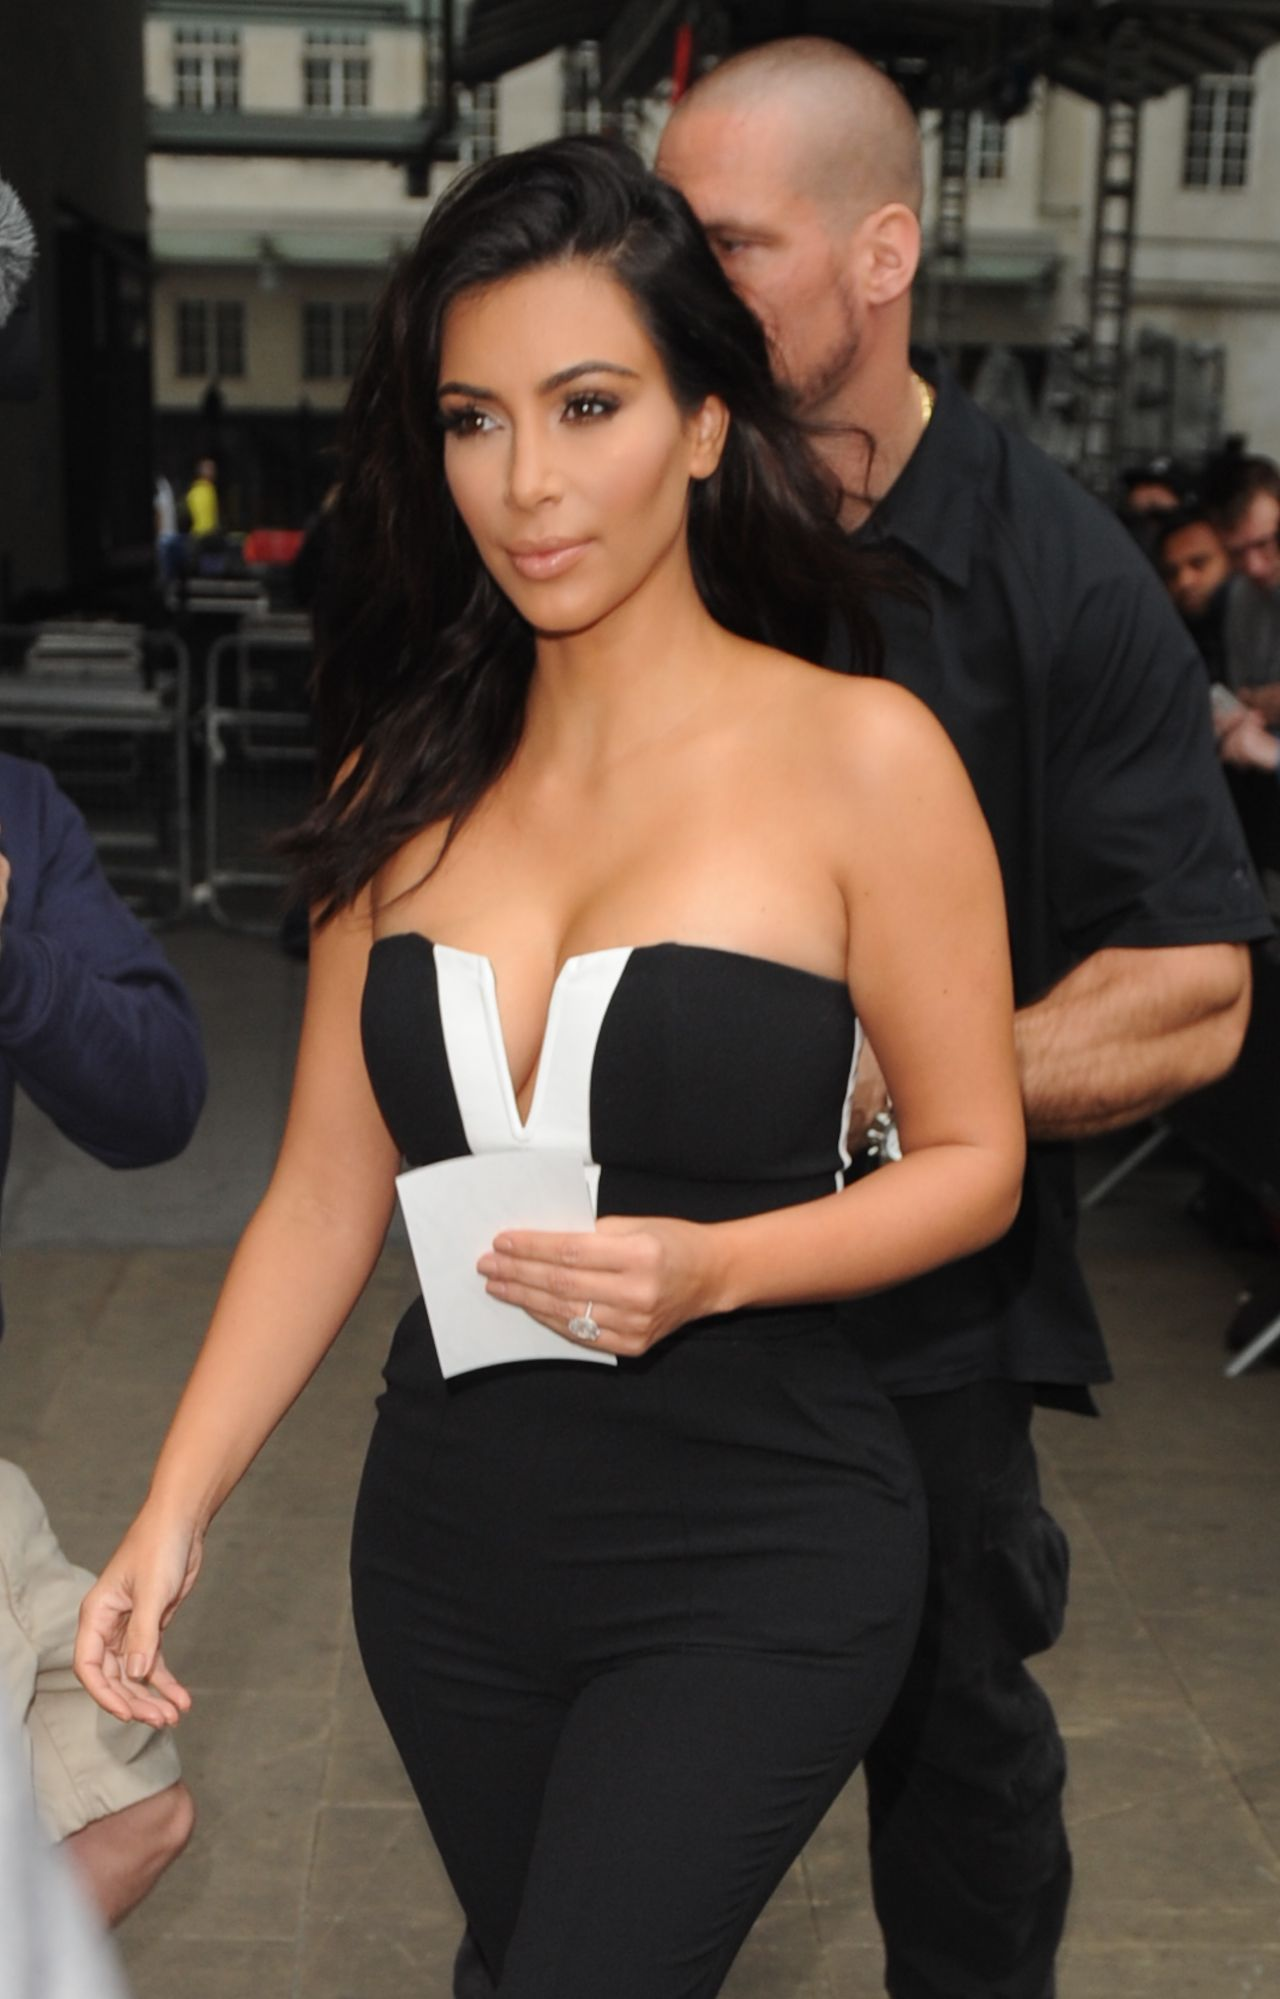 Kim Kardashian - Leaving BBC Radio1 in central london - September 2014